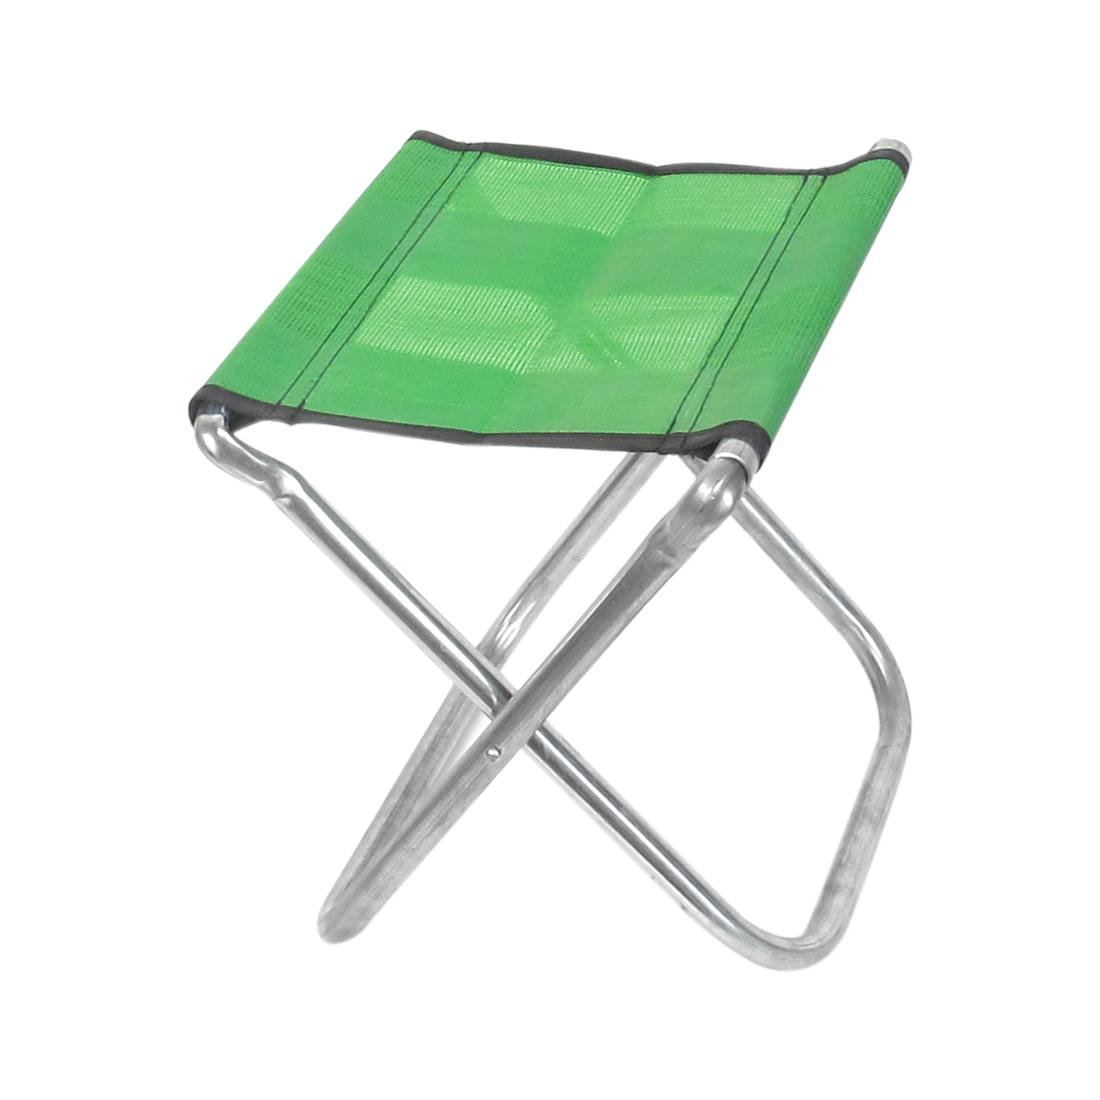 Outdoor Fishing Travel Metal Frame Nylon Seat Portable Folding Chair Stool Green